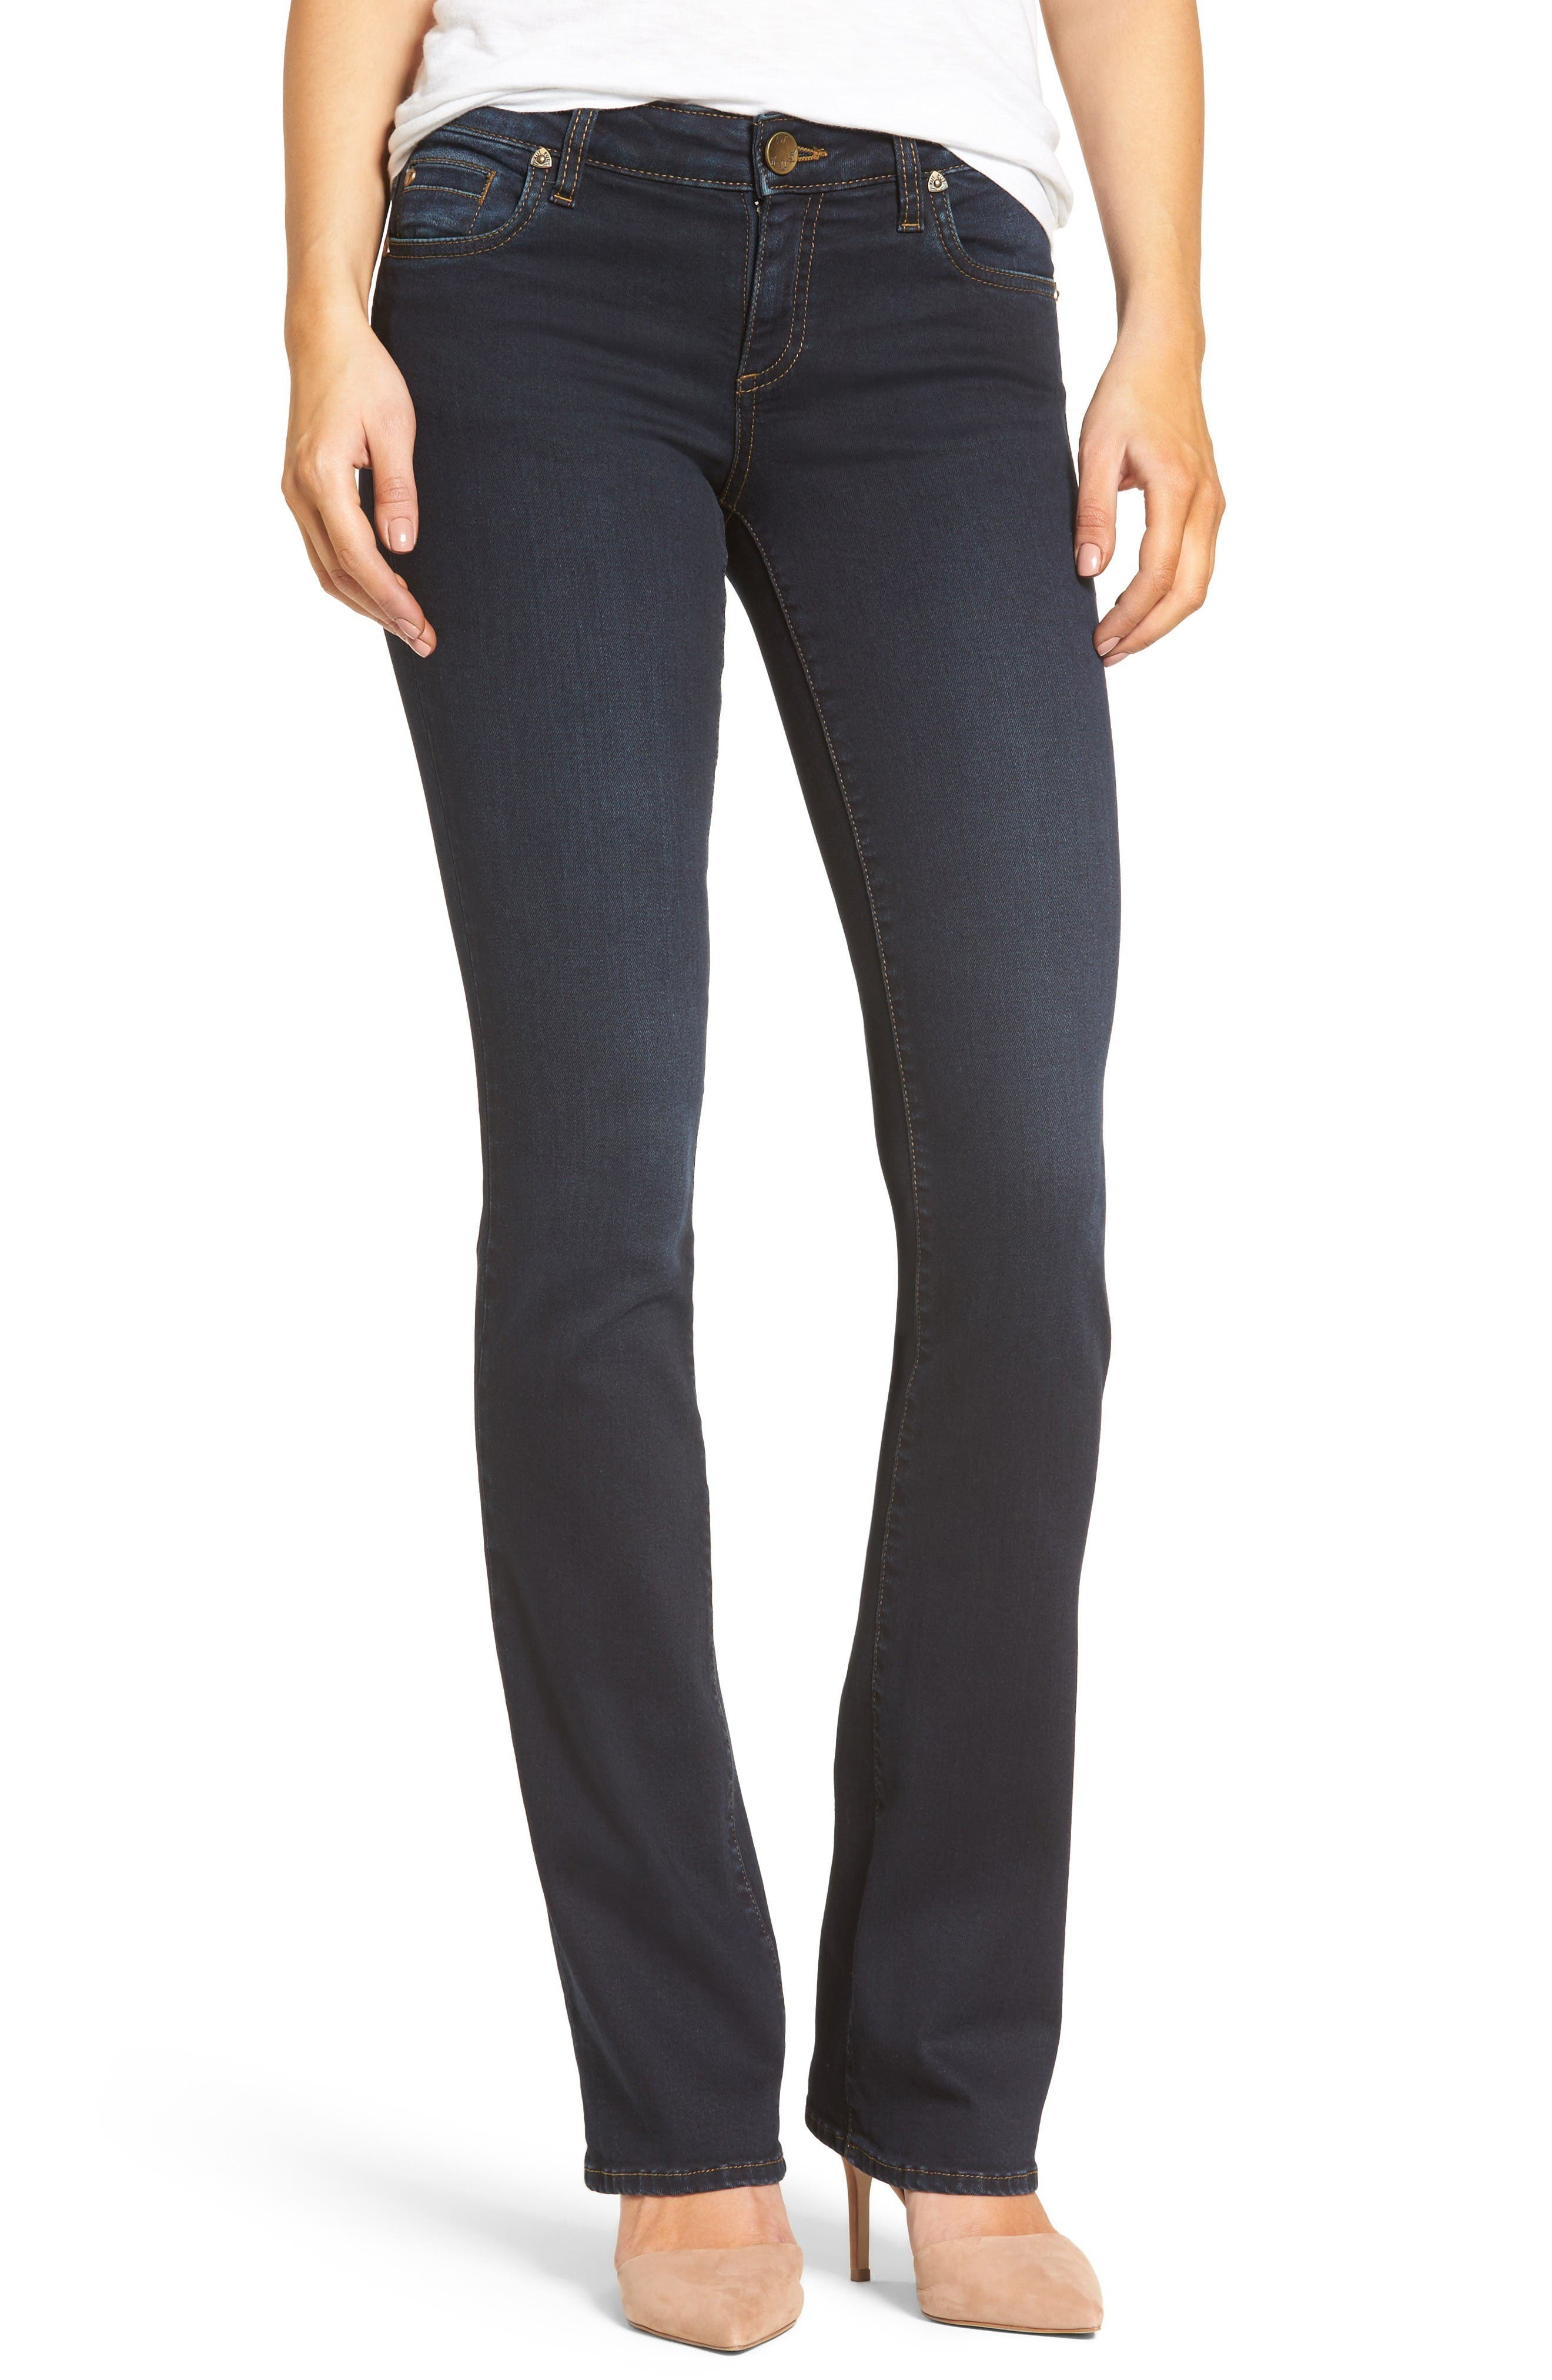 Alternate Image 1 Selected - KUT from the Kloth Natalie Stretch Bootleg Jeans (Immeasurable) (Regular & Petite)